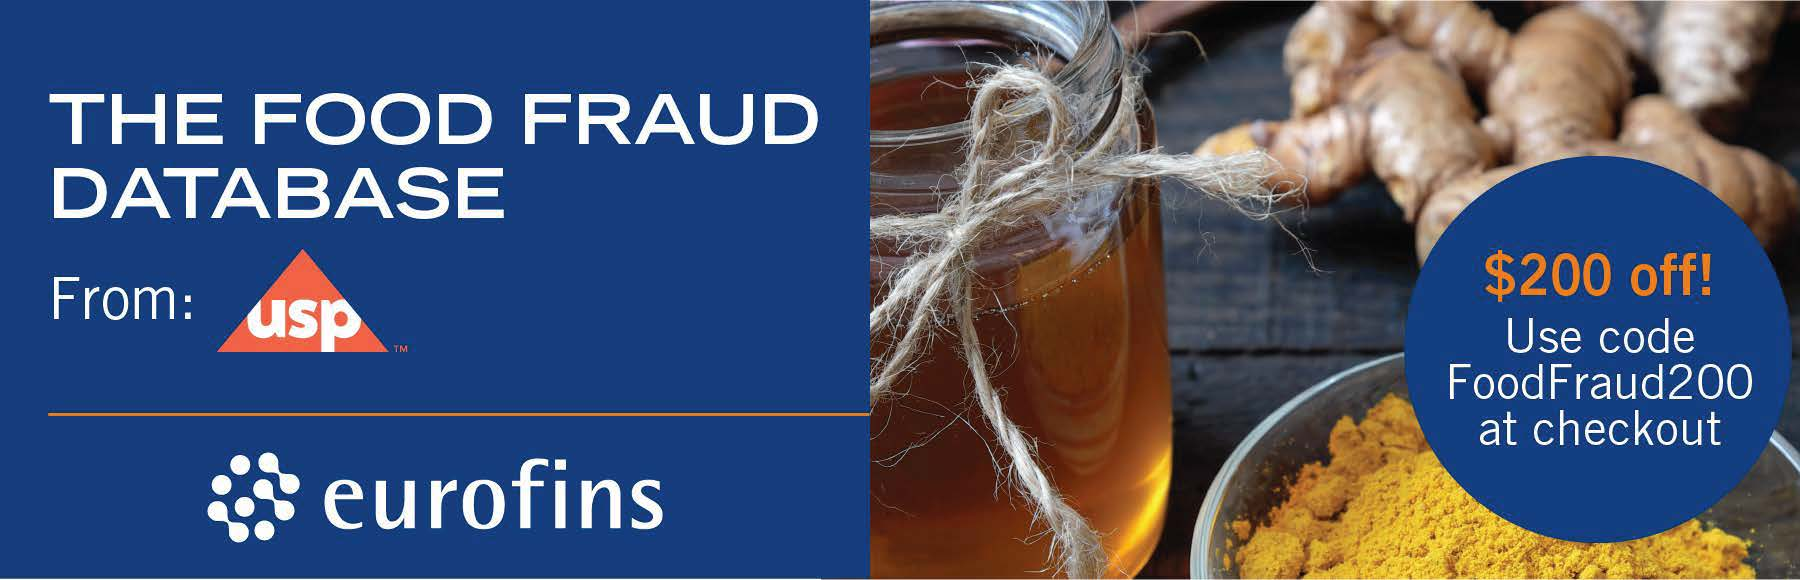 Navigating Food Fraud